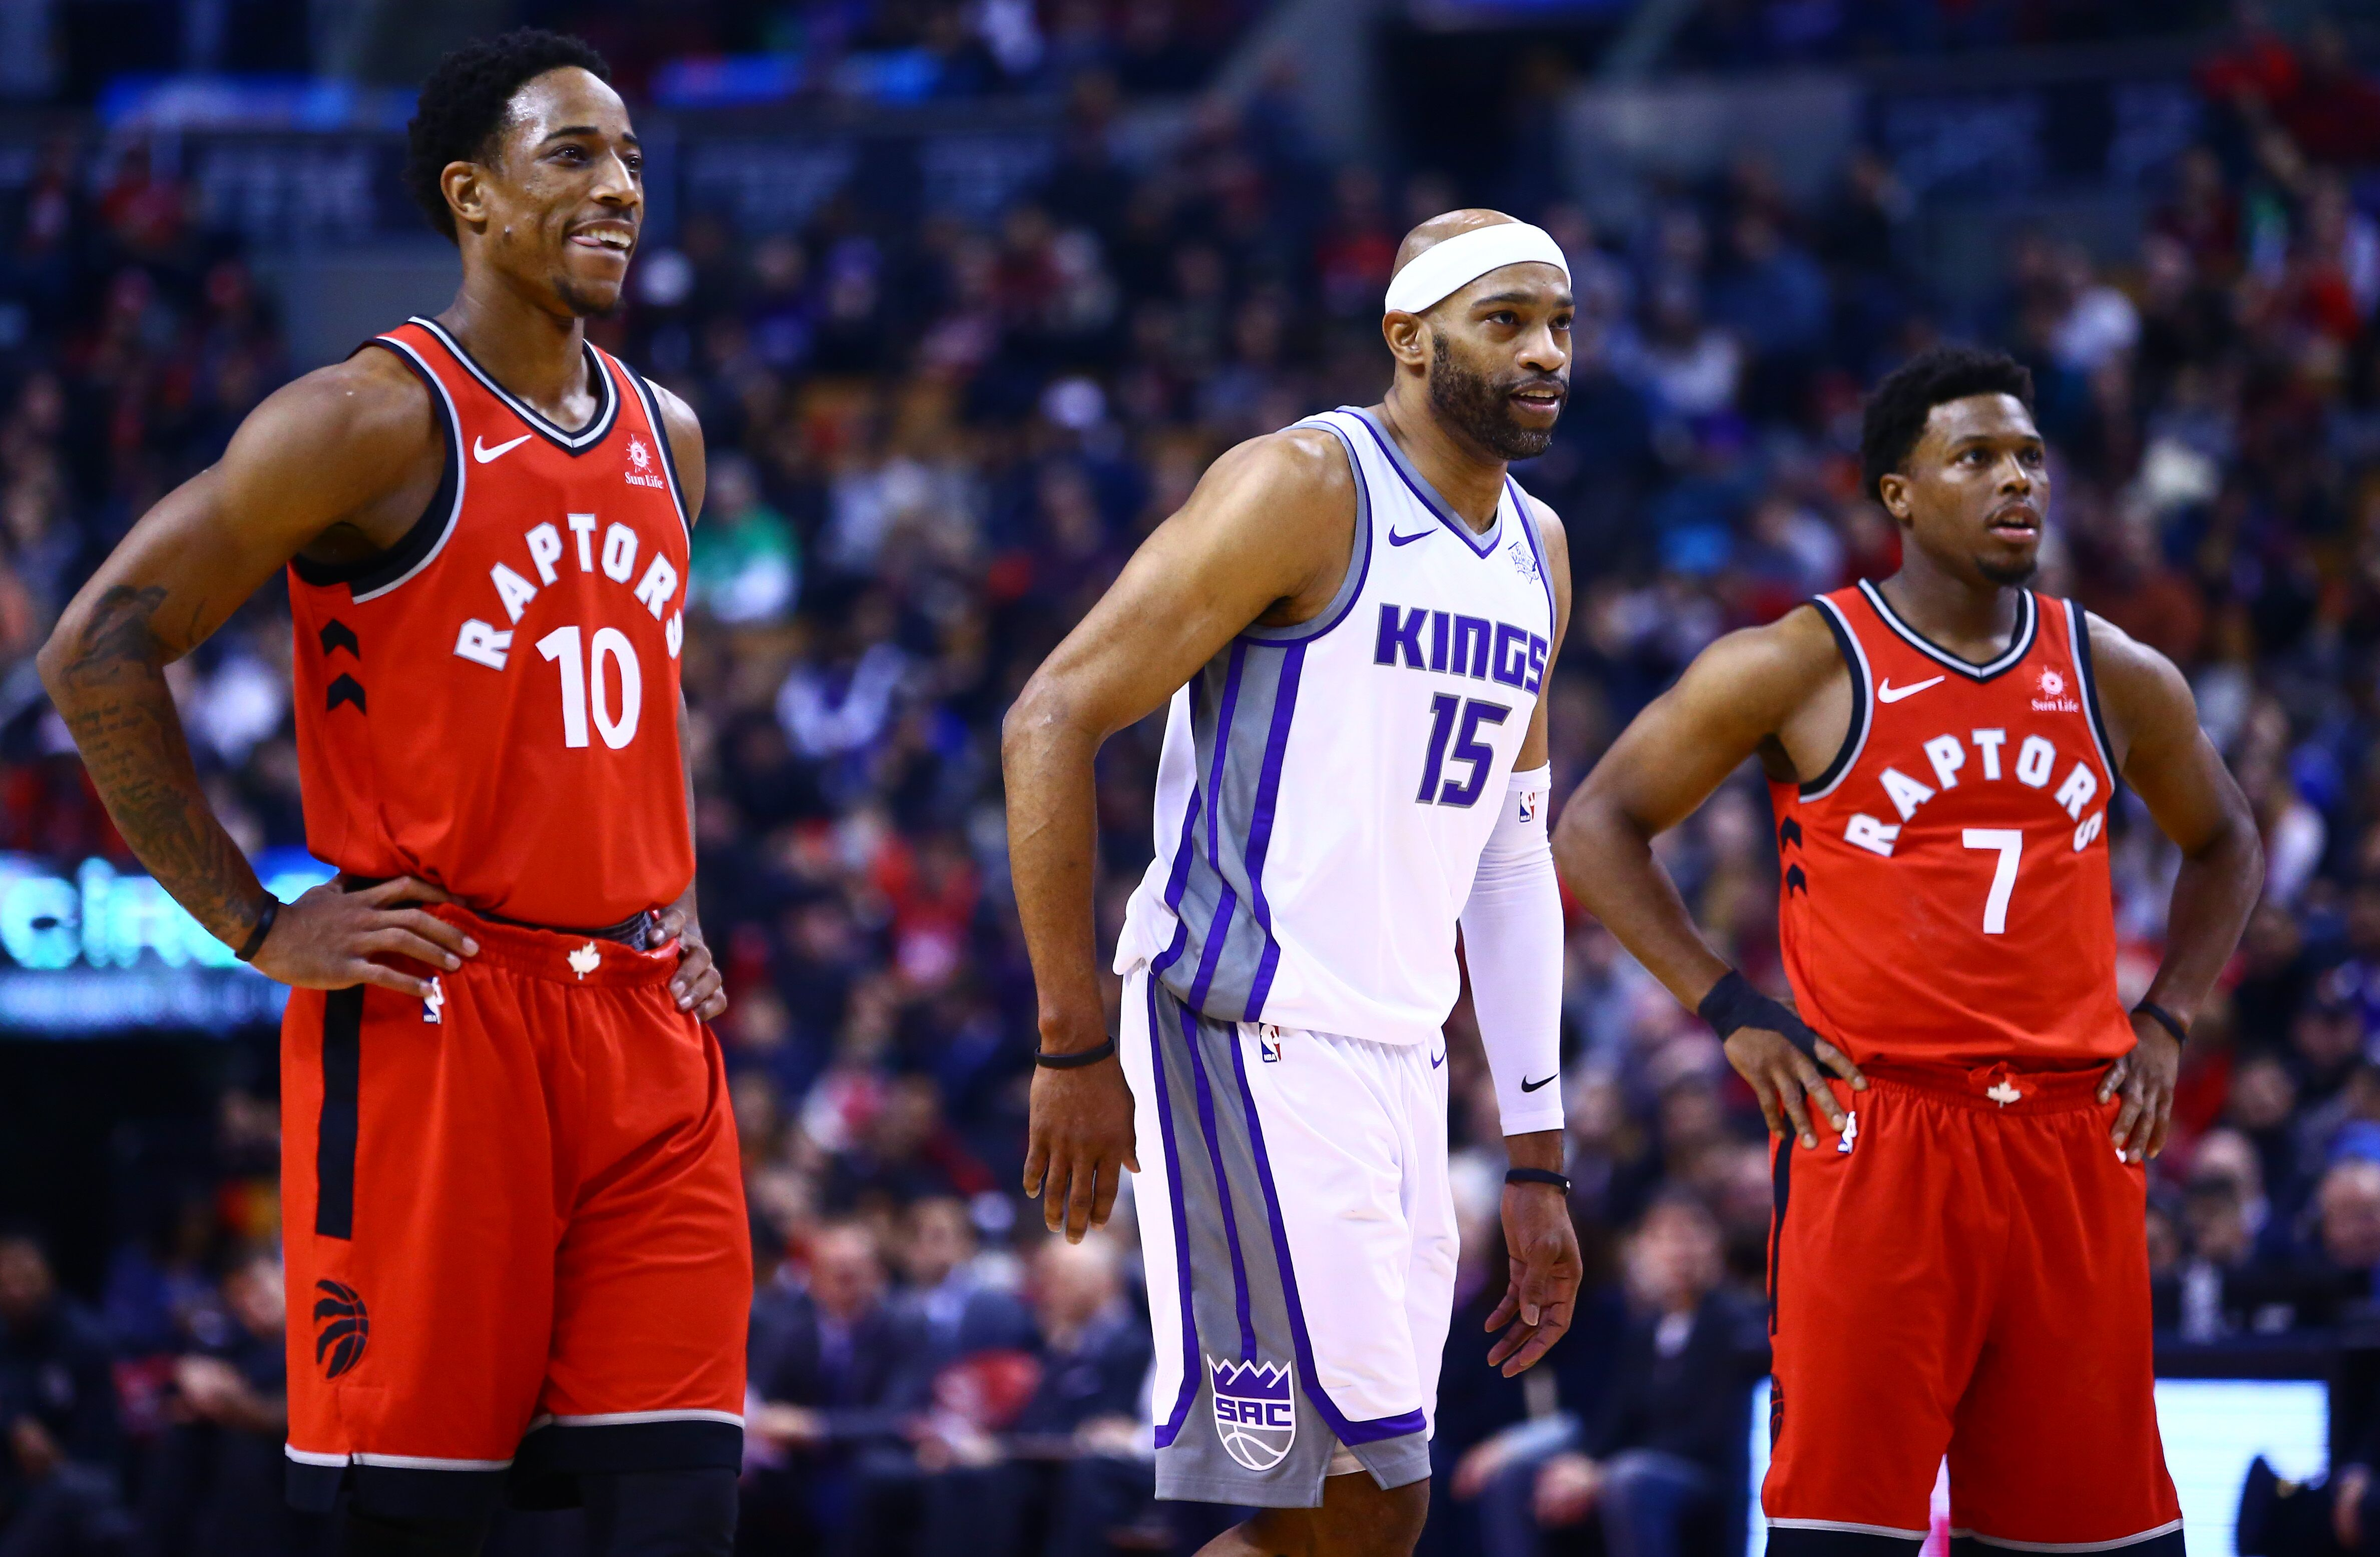 c281eaeb6f7 A history of Vince Carter, who is still amazing after all these years